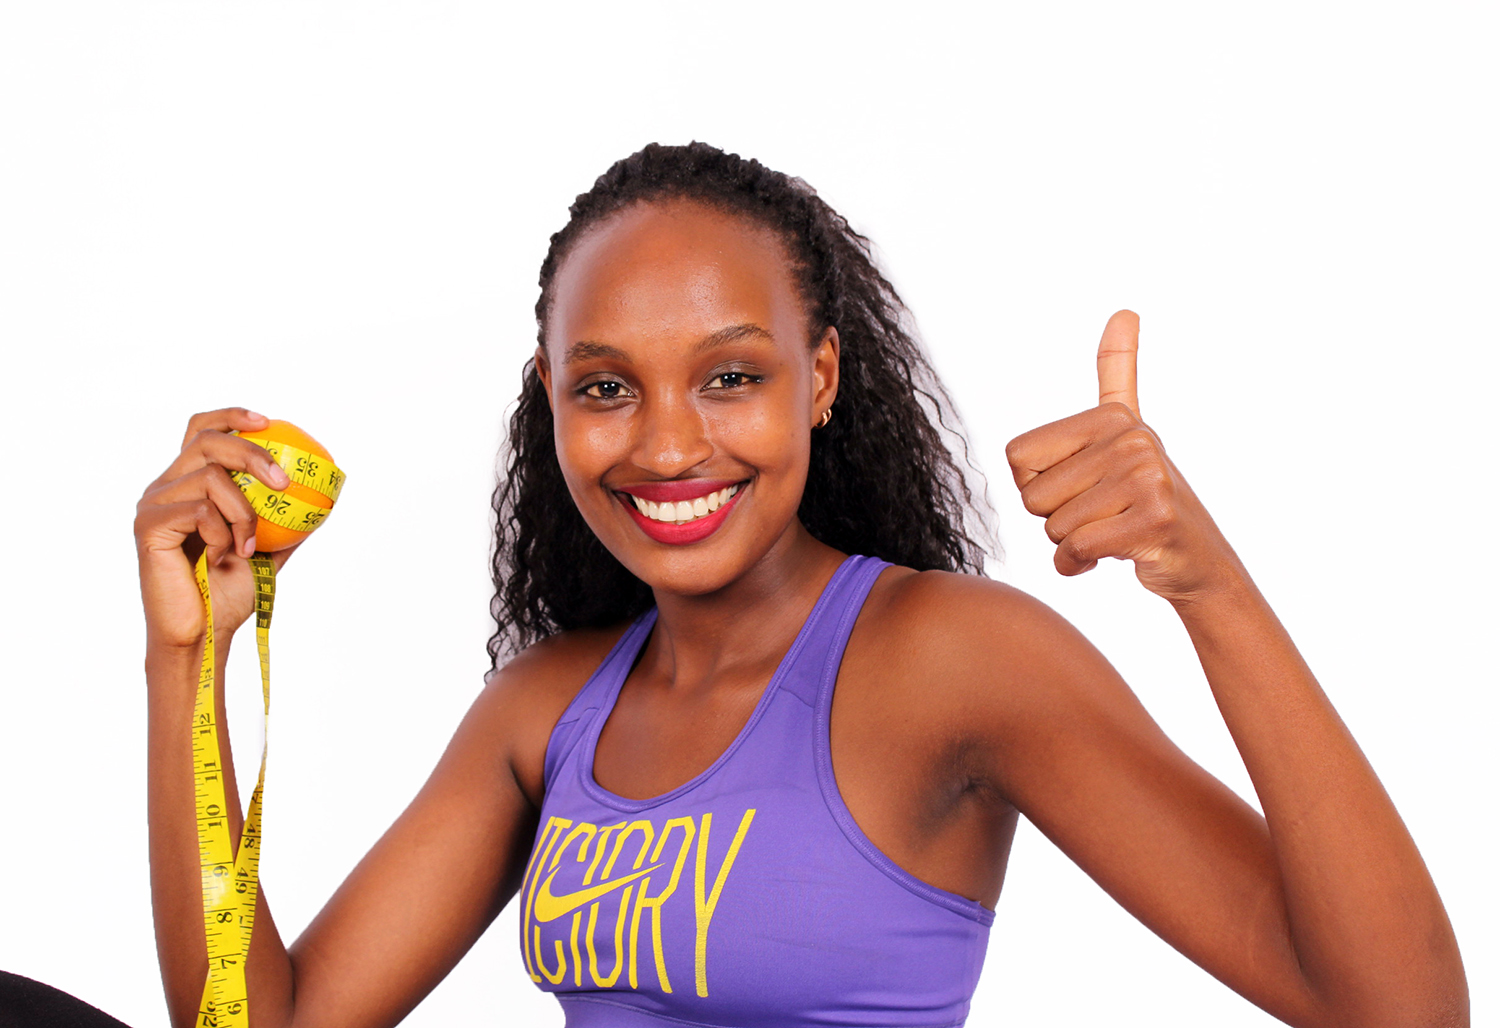 Healthy Lifestyle Concept. Woman Holding Orange Fruit Wrapped With Tape Measure